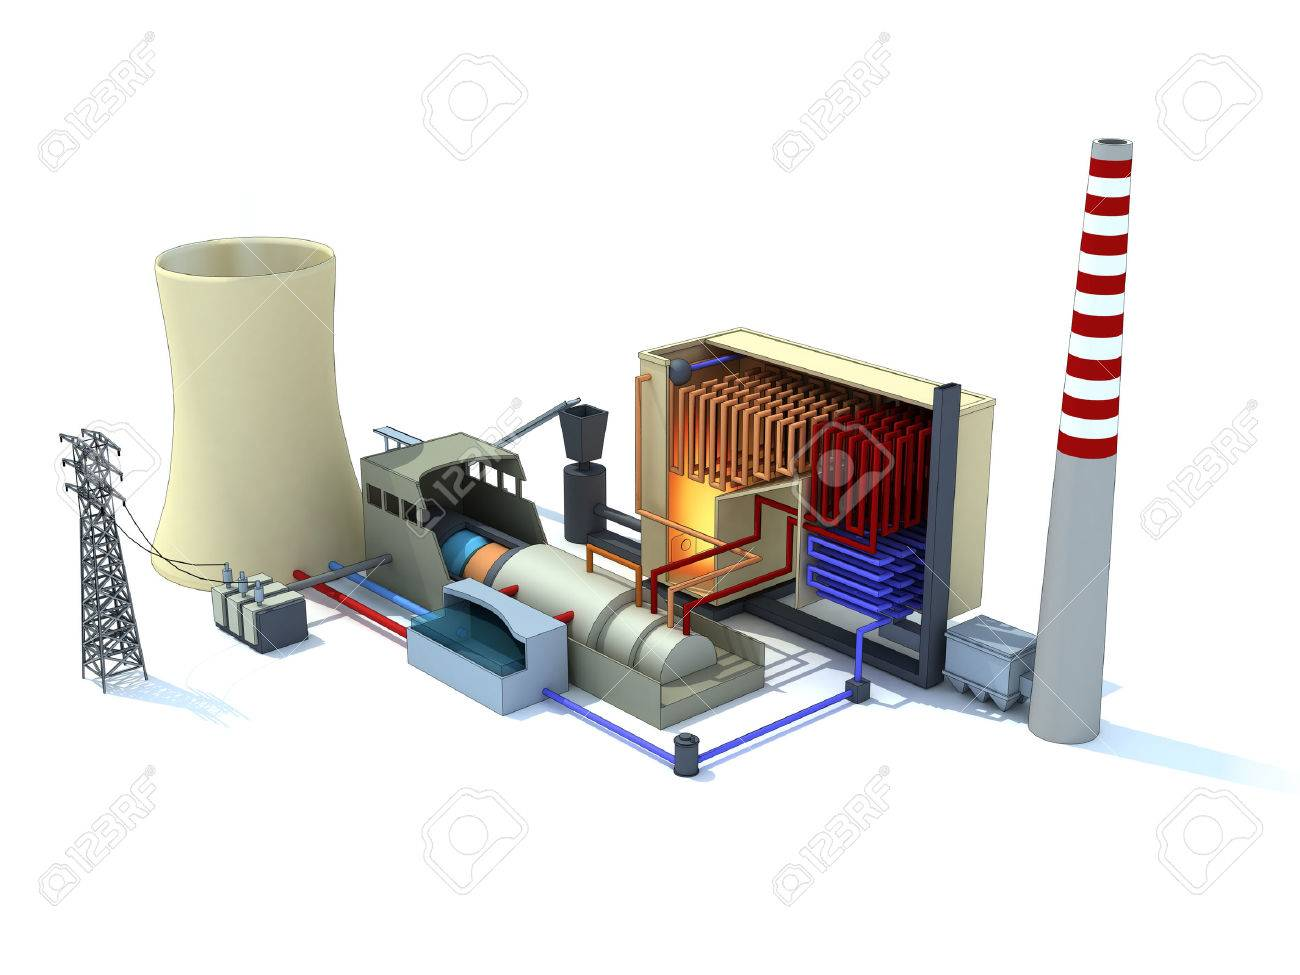 hight resolution of 3d rendering of a thermal power plant inked stock photo 35766204